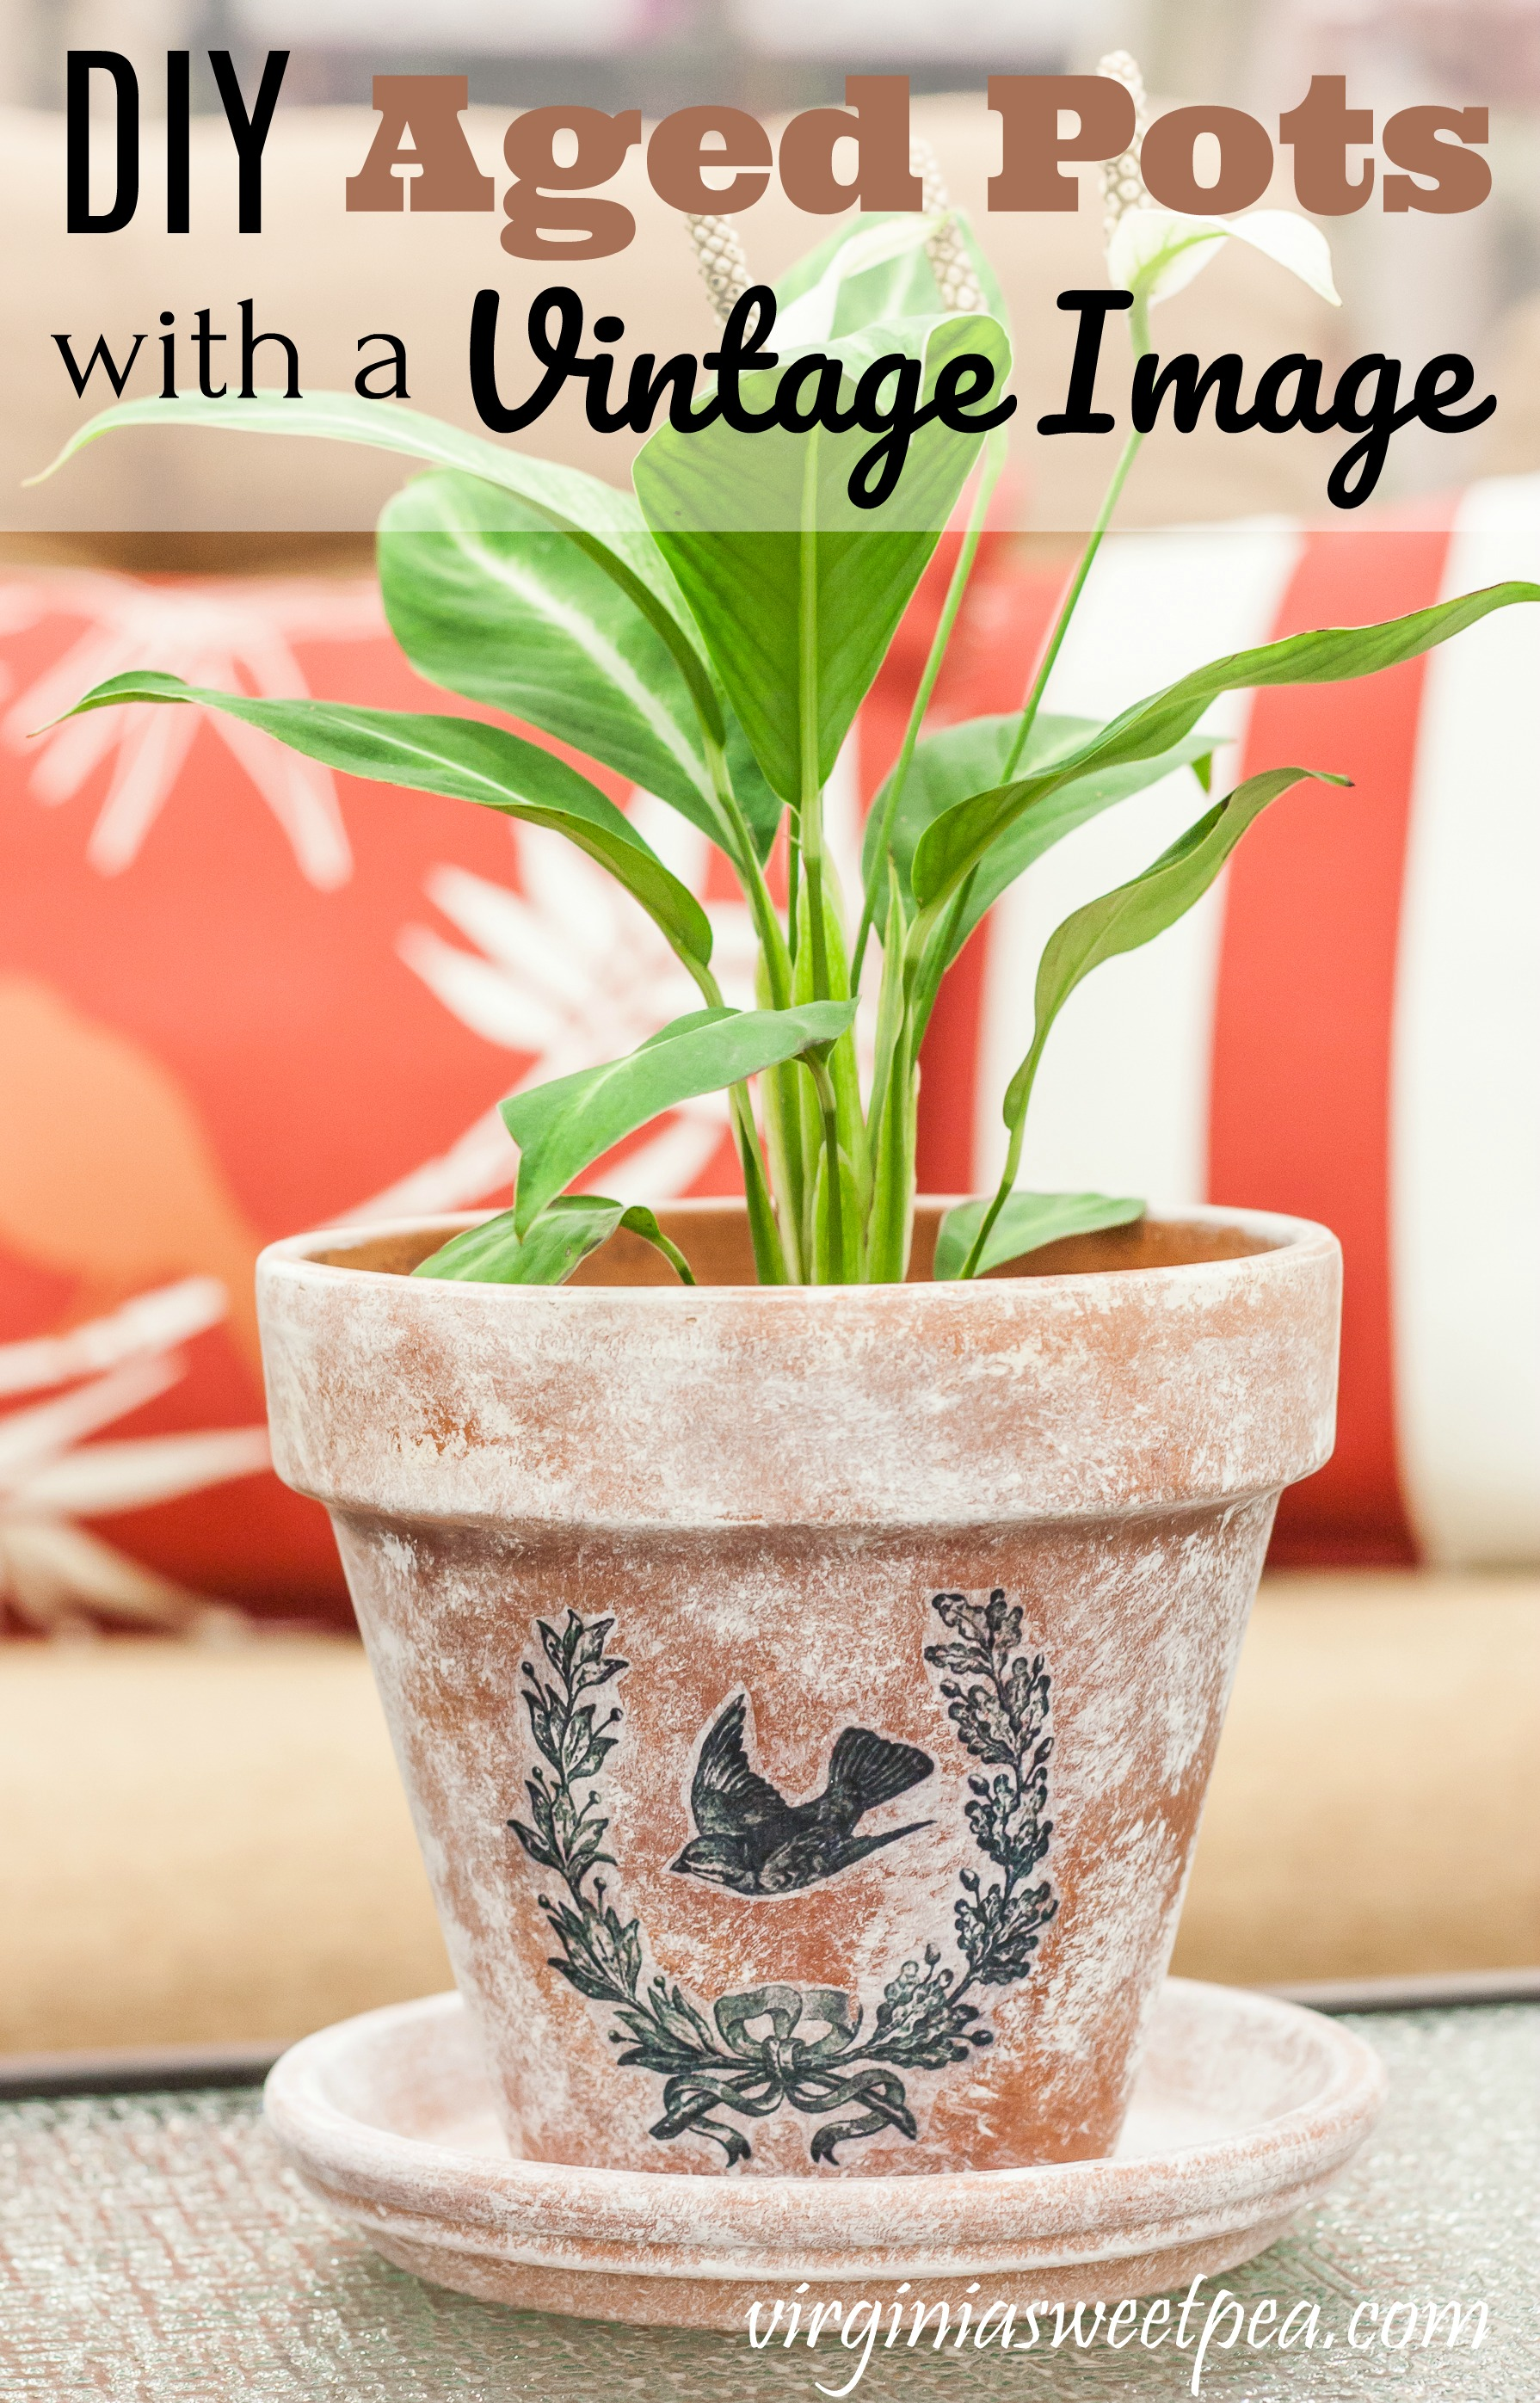 DIY Aged Pots with a Vintage Image - Make a flower pot look aged with this easy paint technique then add a vintage image for a one of a kind look.